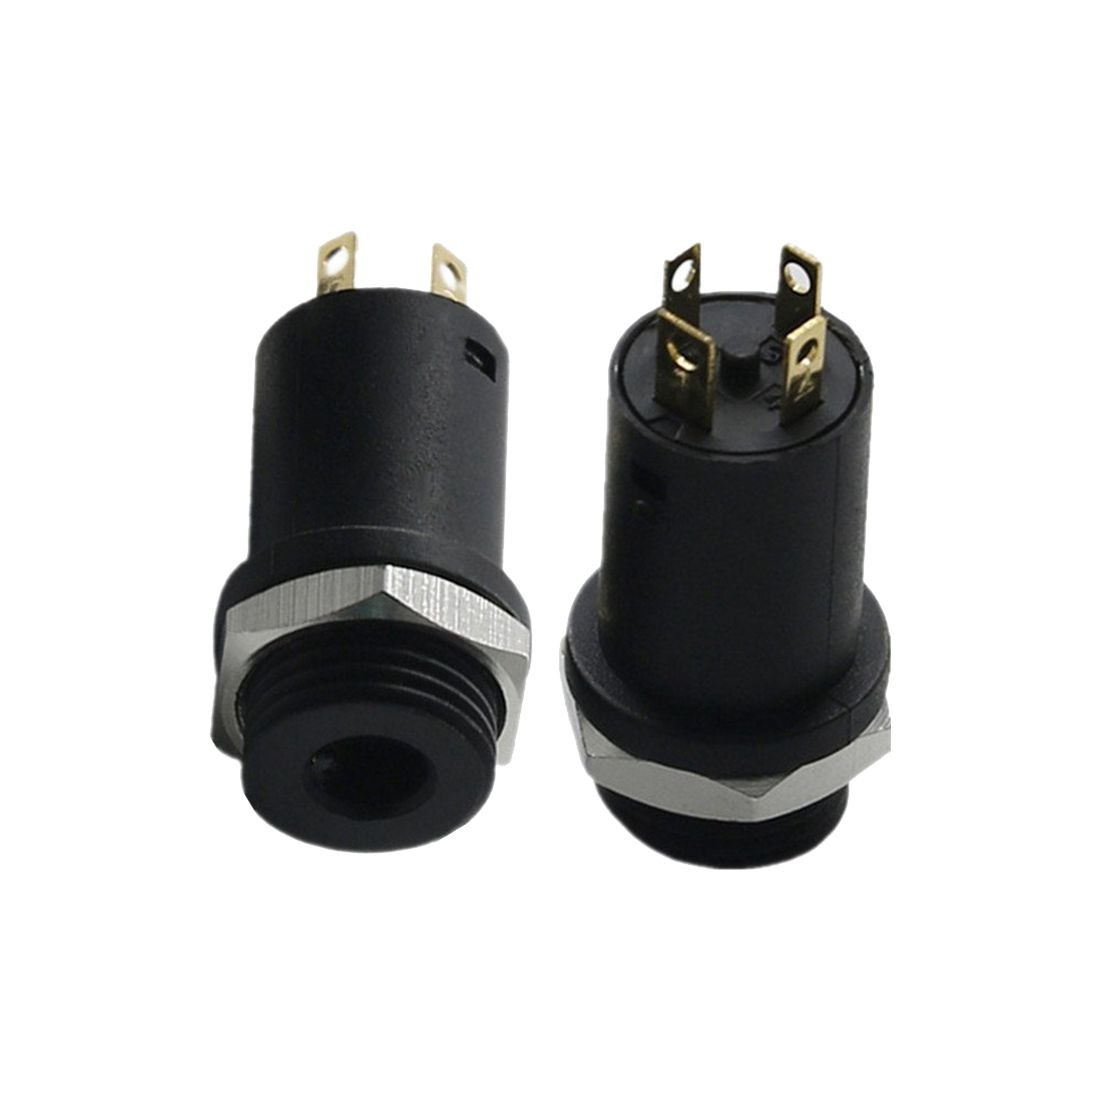 medium resolution of 10pcs 3 5mm mini stereo female panel mount headphone jack solder black 4 conductor in earphone accessories from consumer electronics on aliexpress com